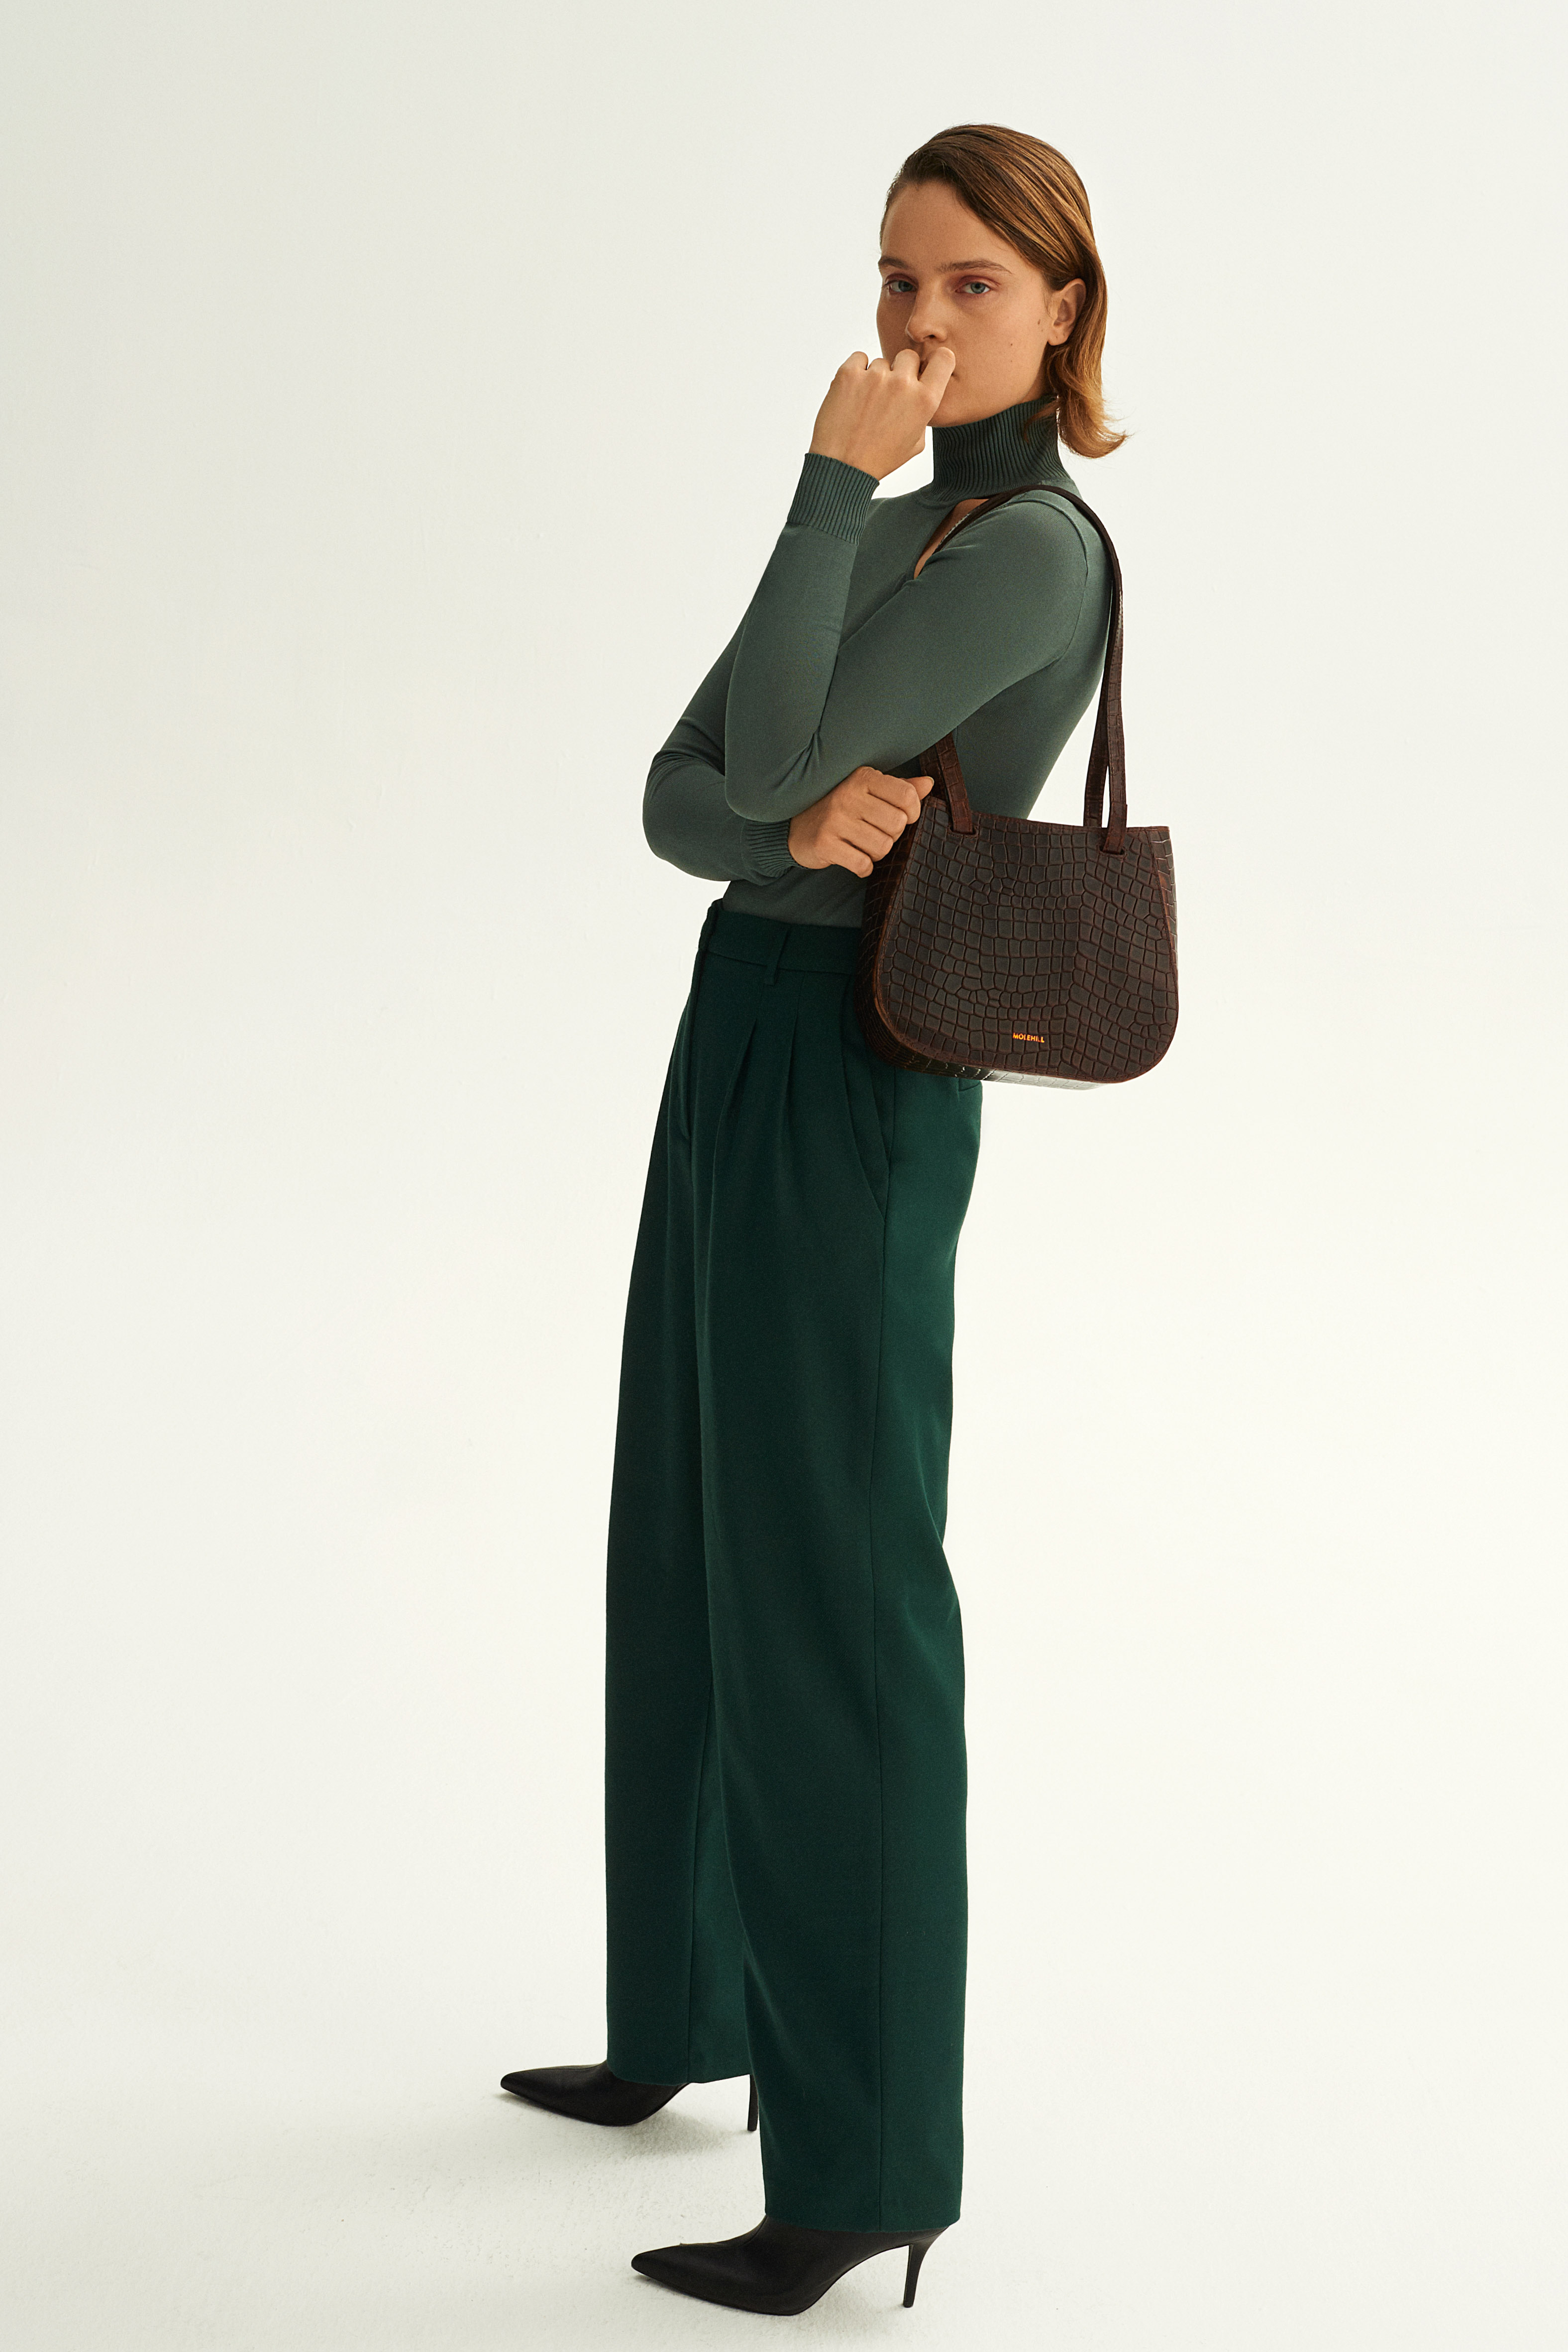 Molehill-Lookbook-Lesa-Small-Handbag-Croco